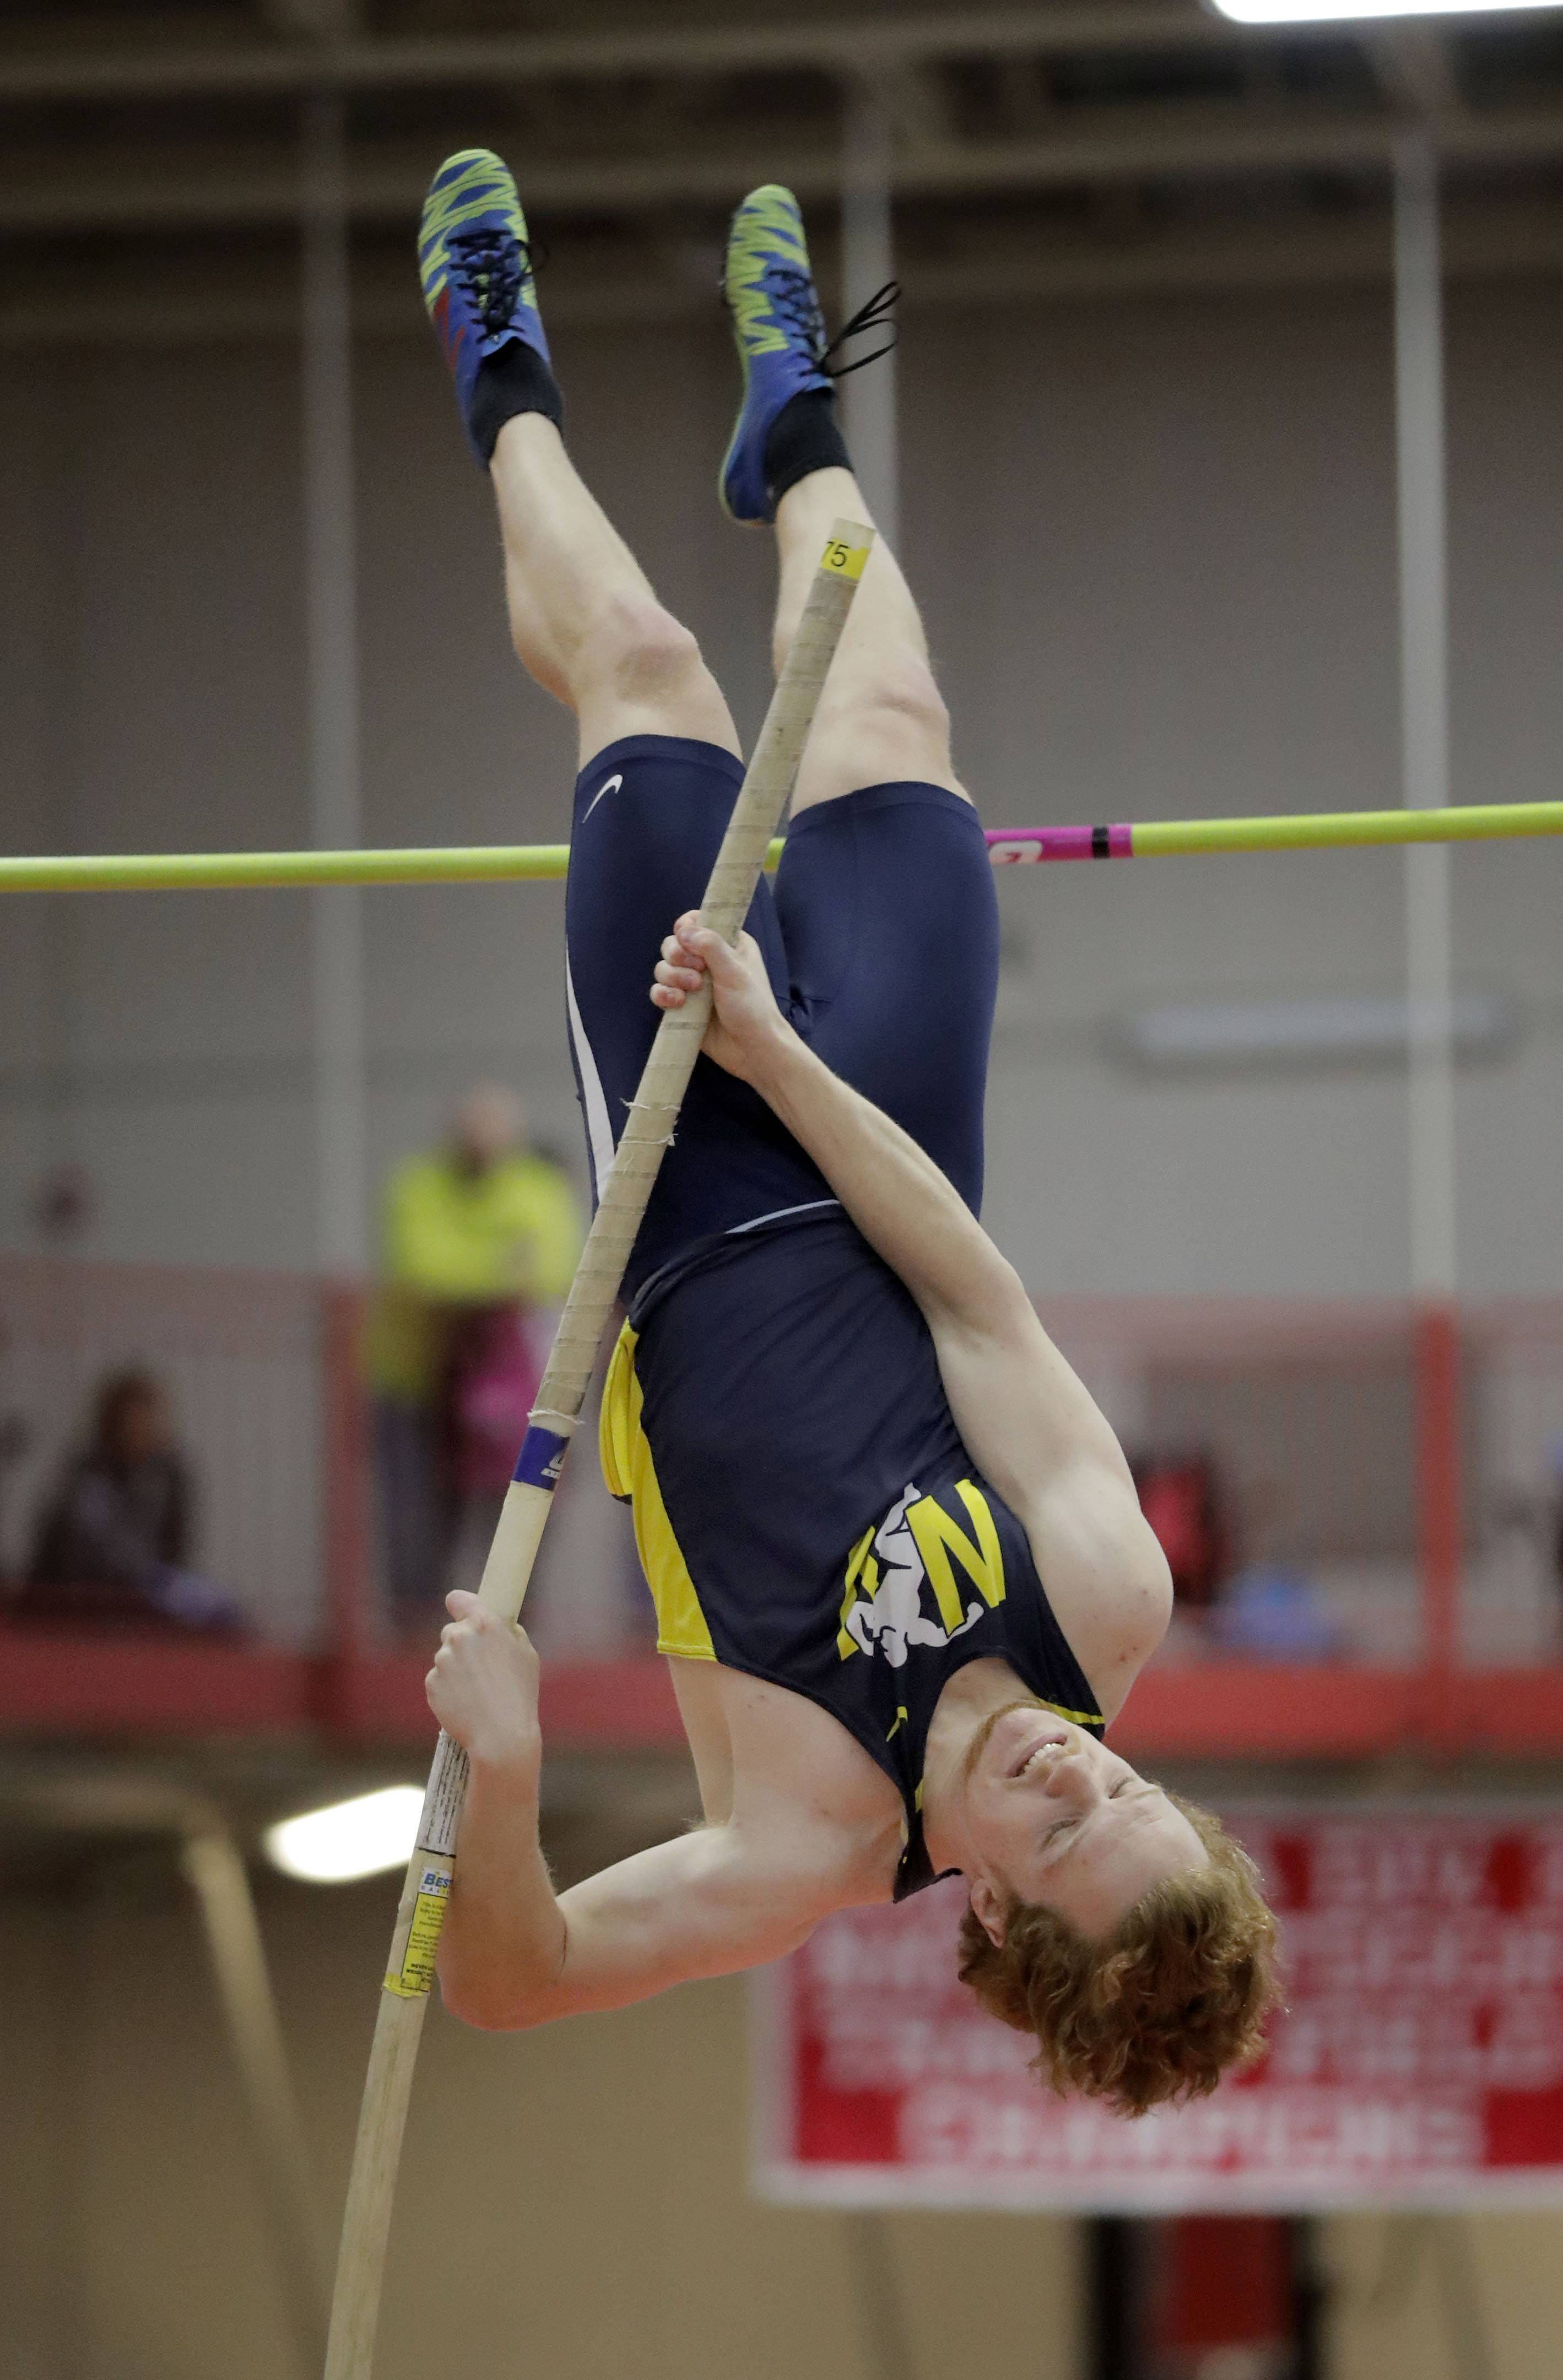 Neuqua Valley's Alexander Kiefer competes in the pole vault during the DuPage Valley Conference boys track meet at North Central College in Naperville Friday.